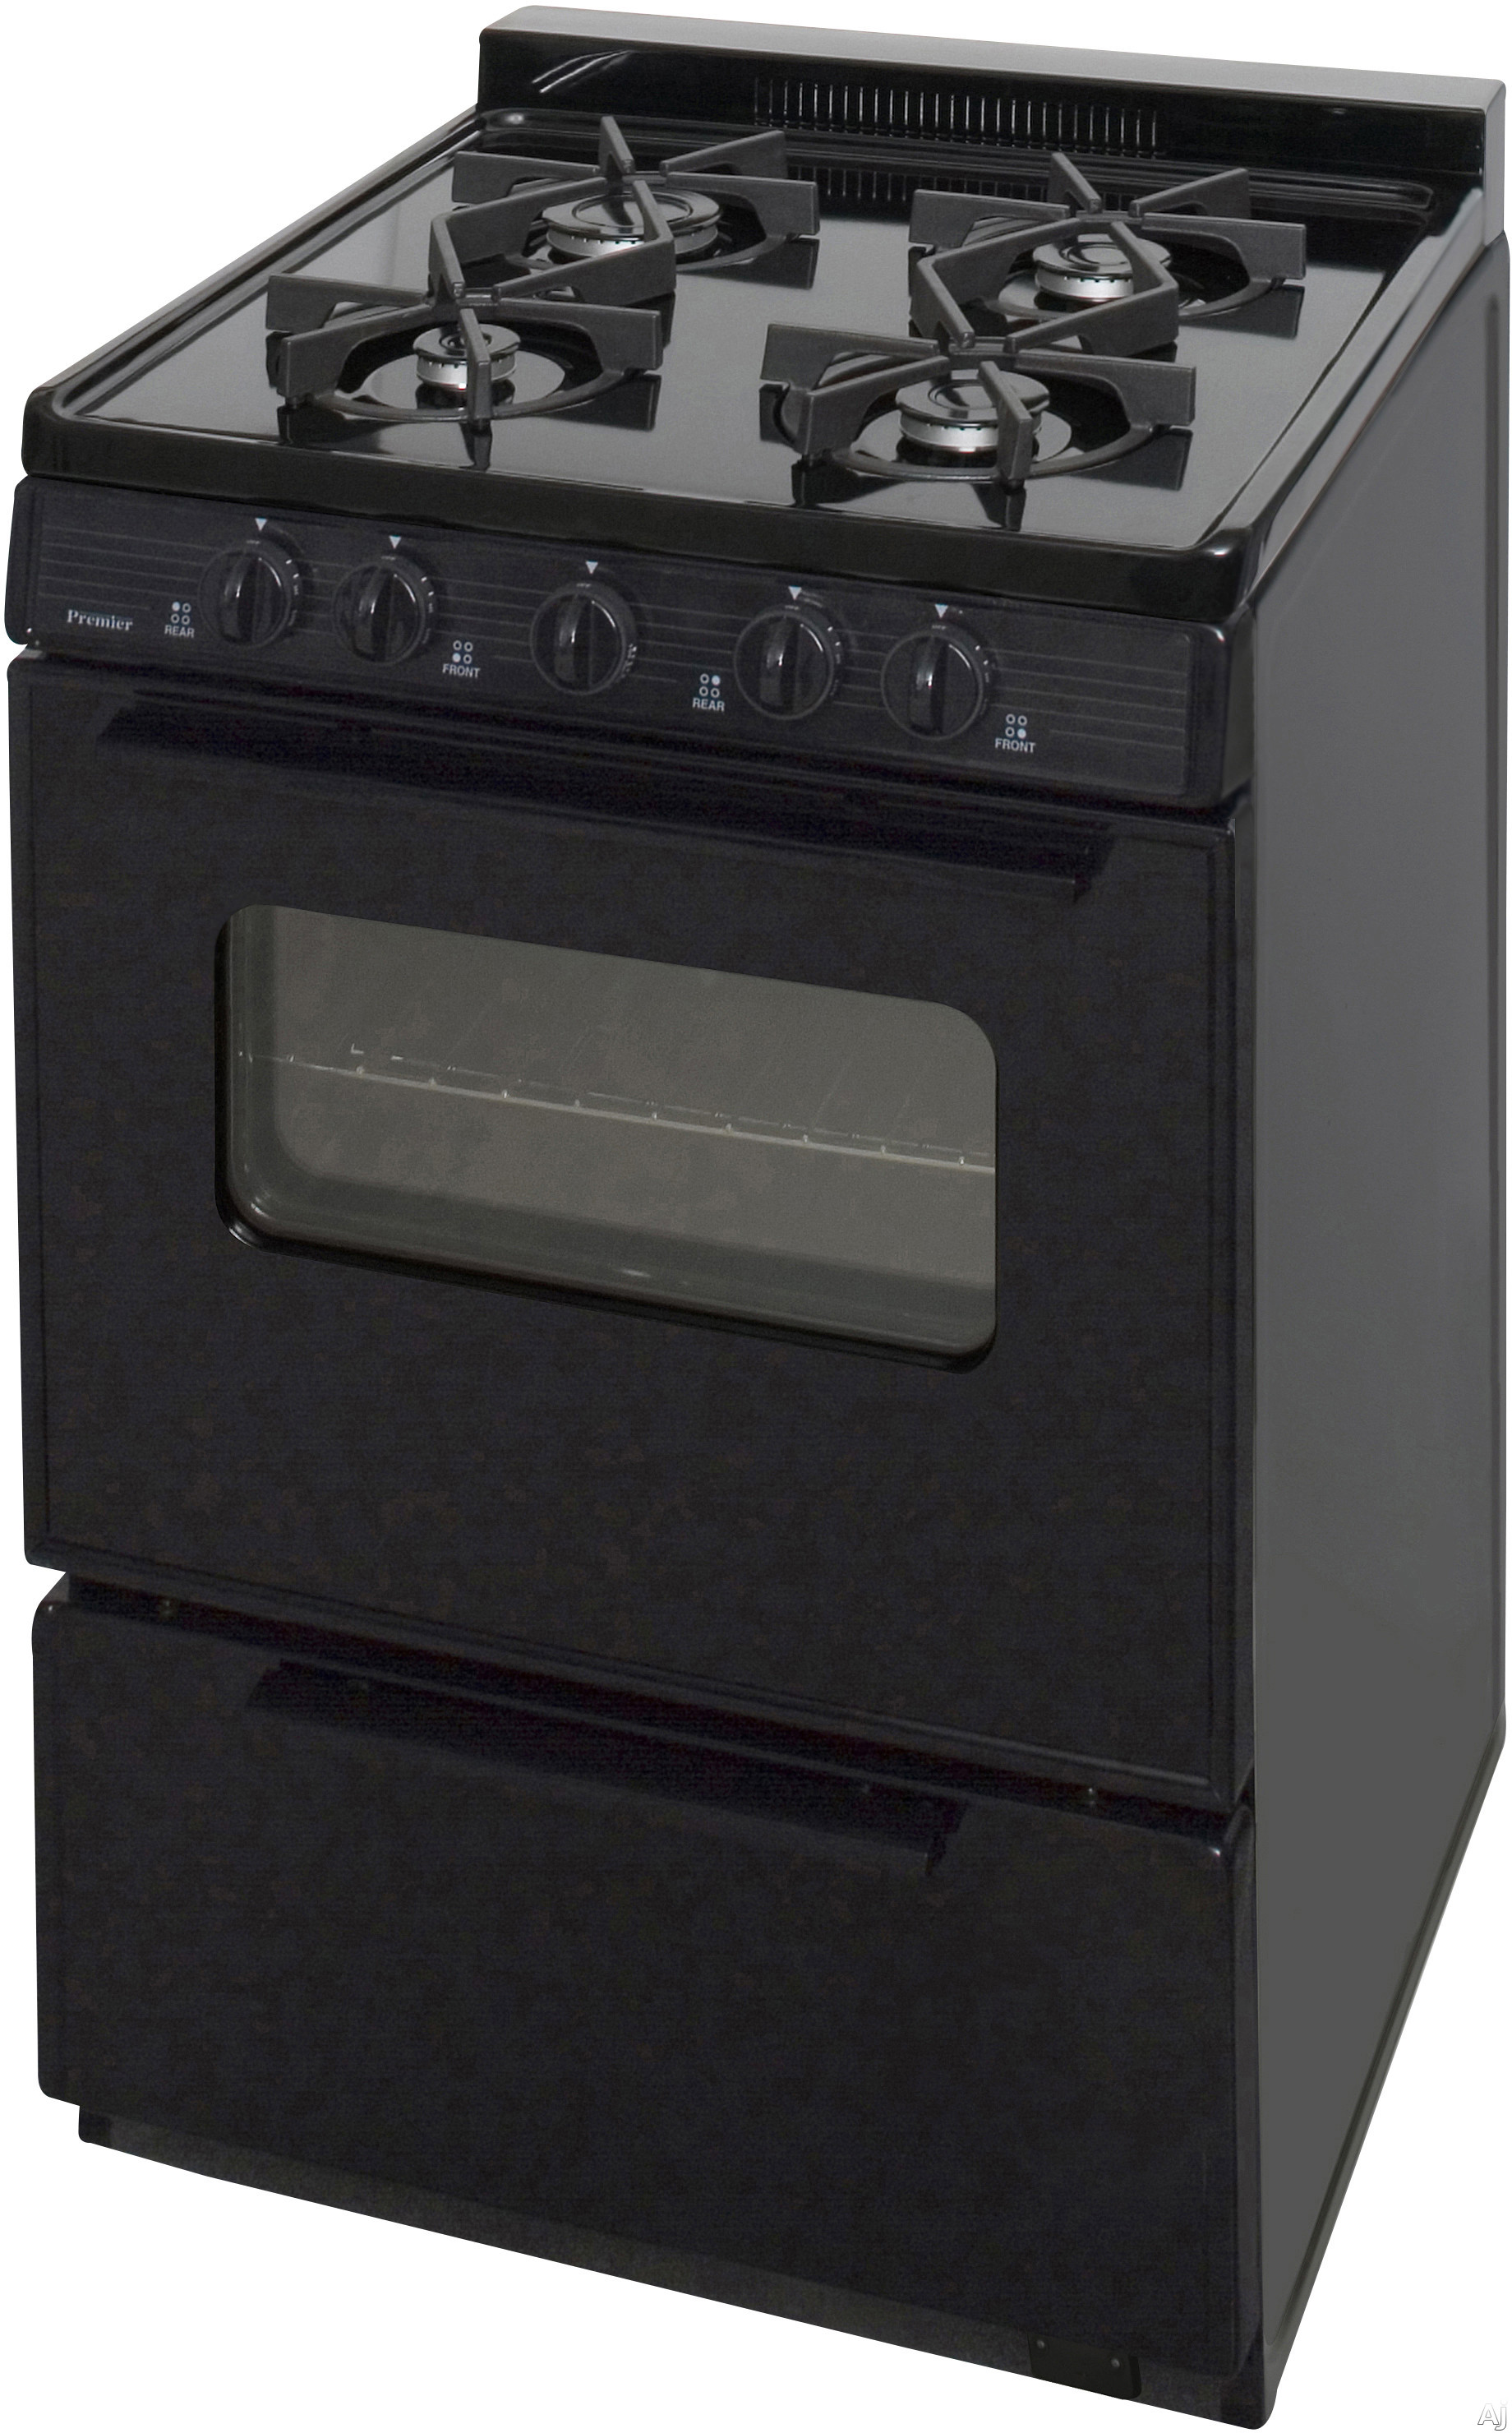 Premier bjk5x0xp 24 freestanding cordless gas range with for 17000 btu window air conditioner